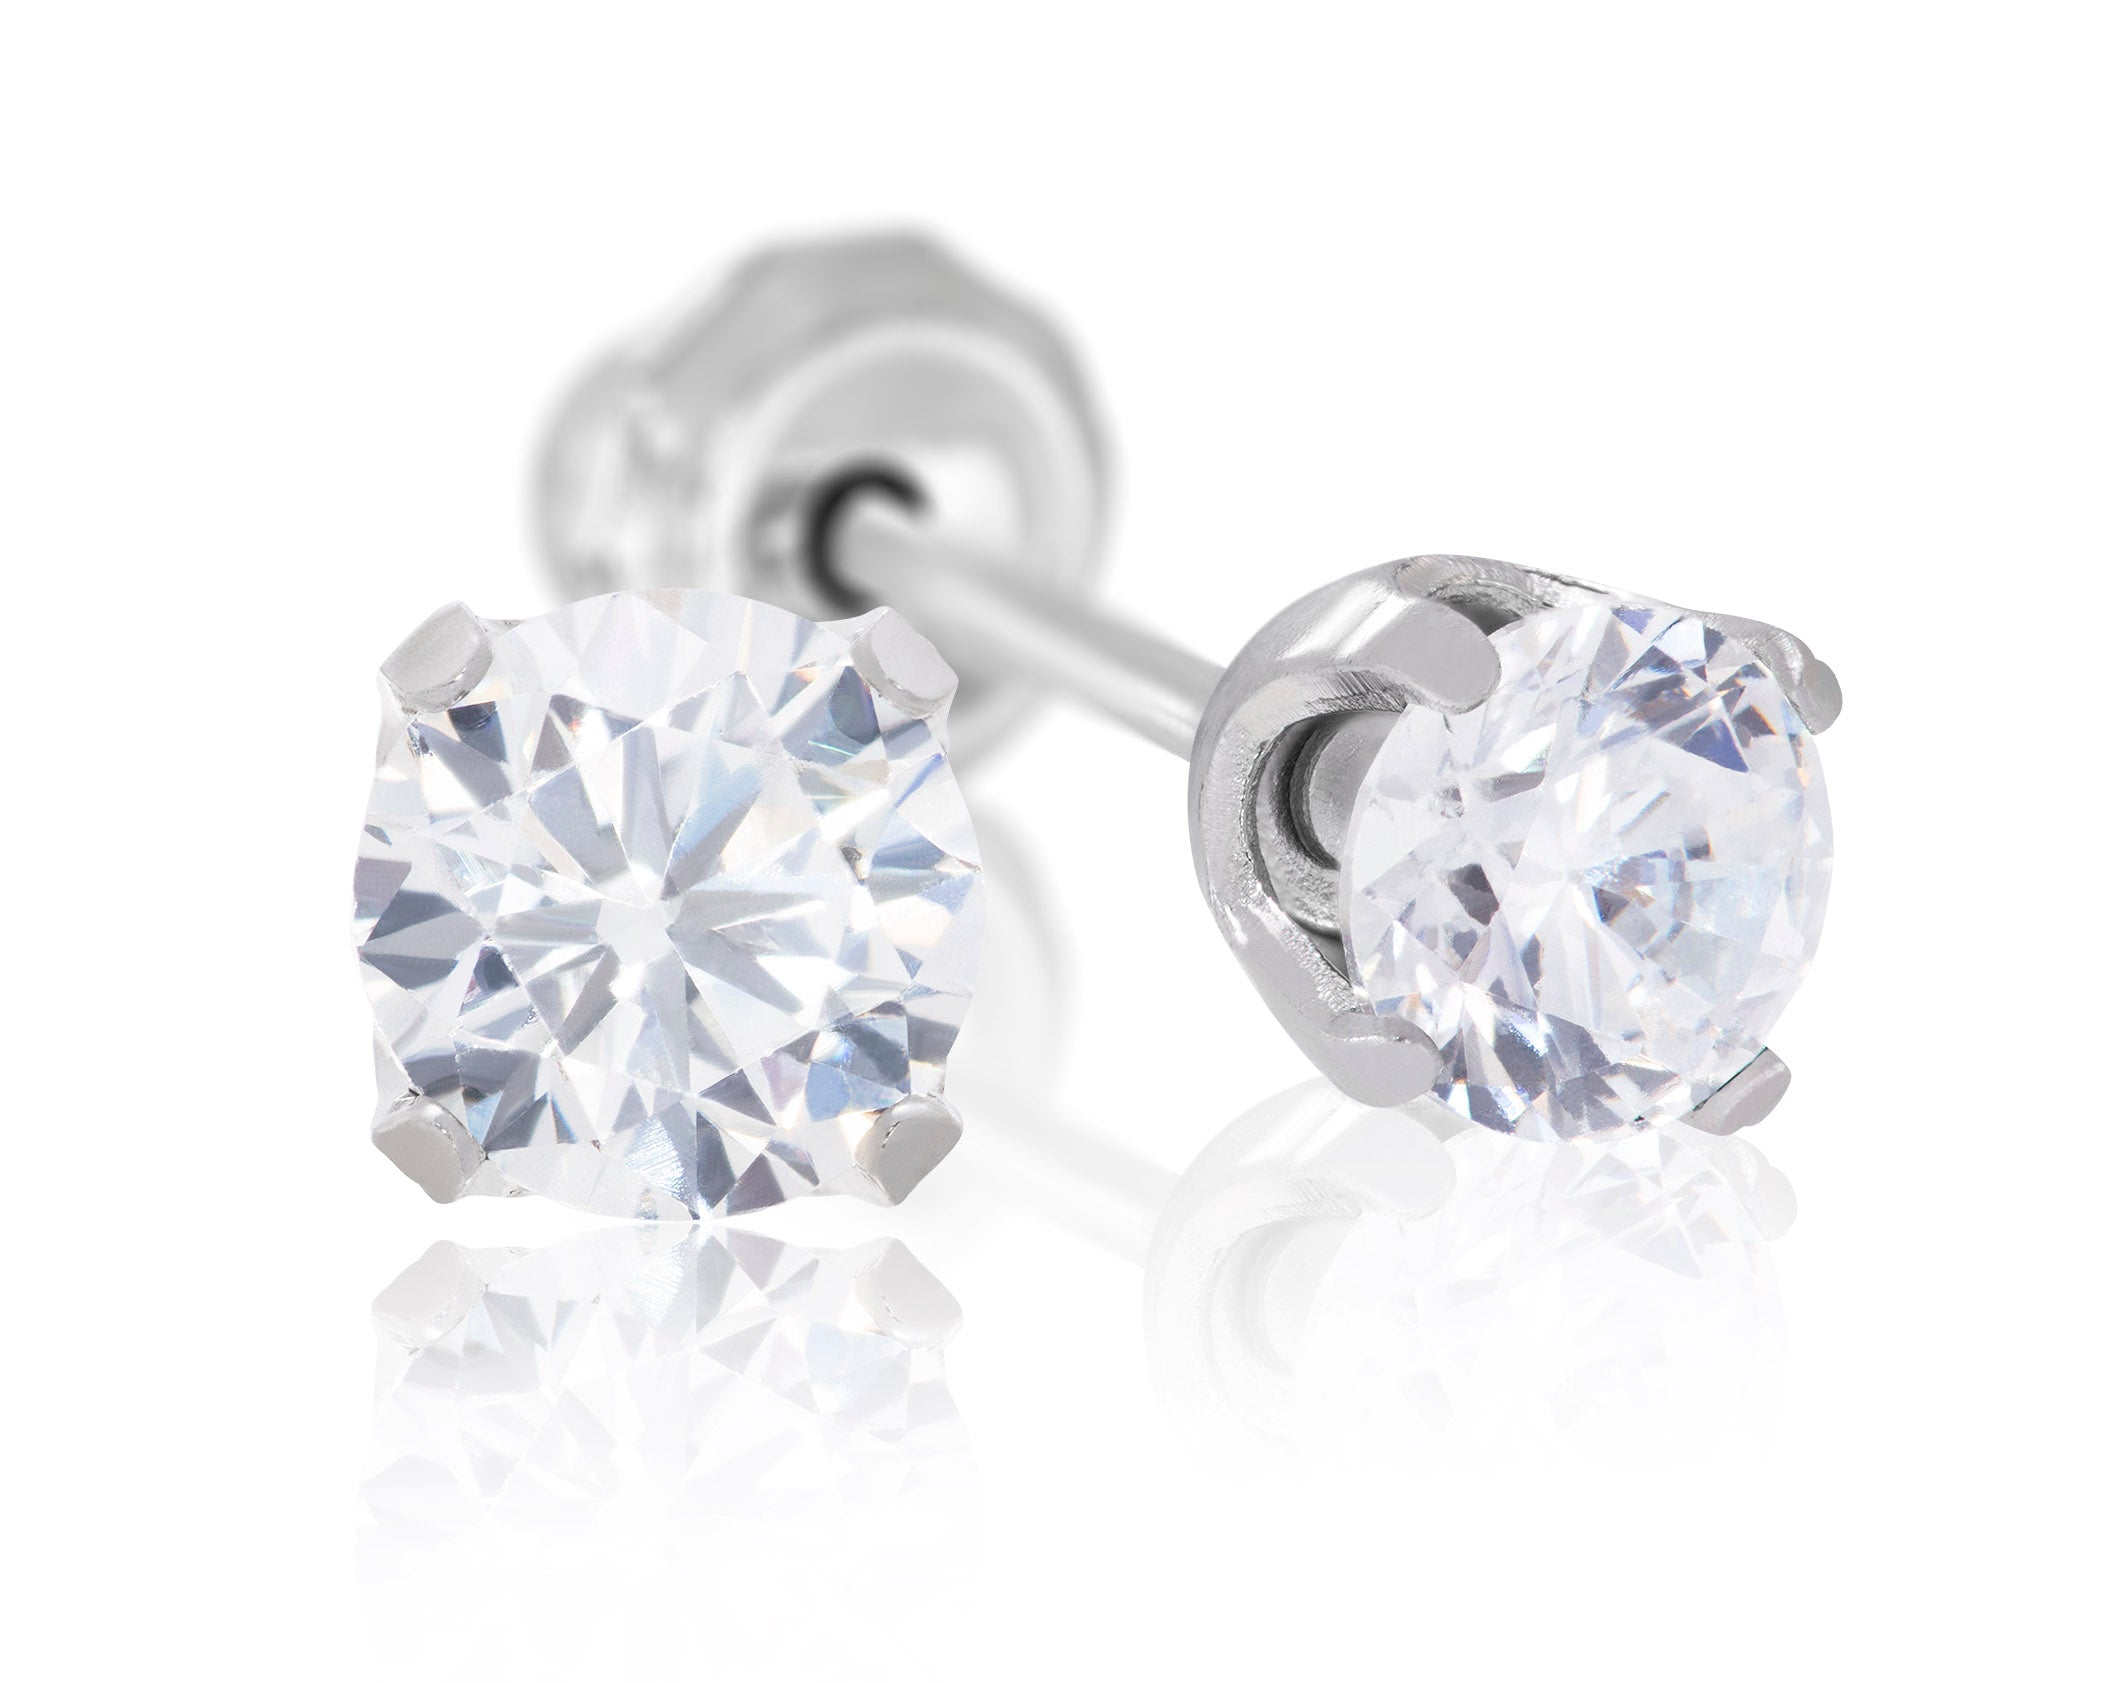 Stainless Steel Medical Grade 5mm CZ Piercing Studs